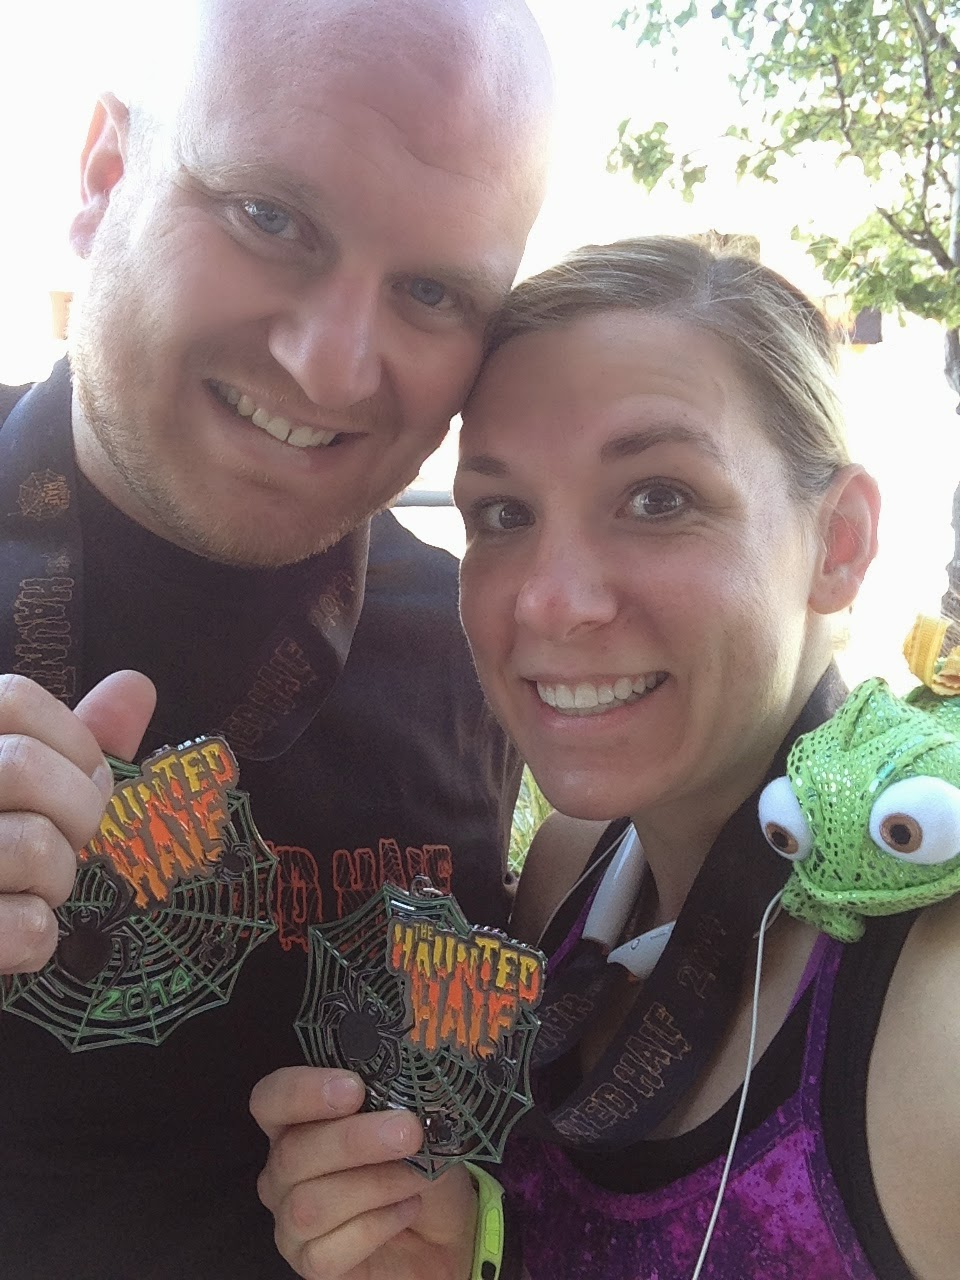 Haunted Half Marathon finished with running with Chase